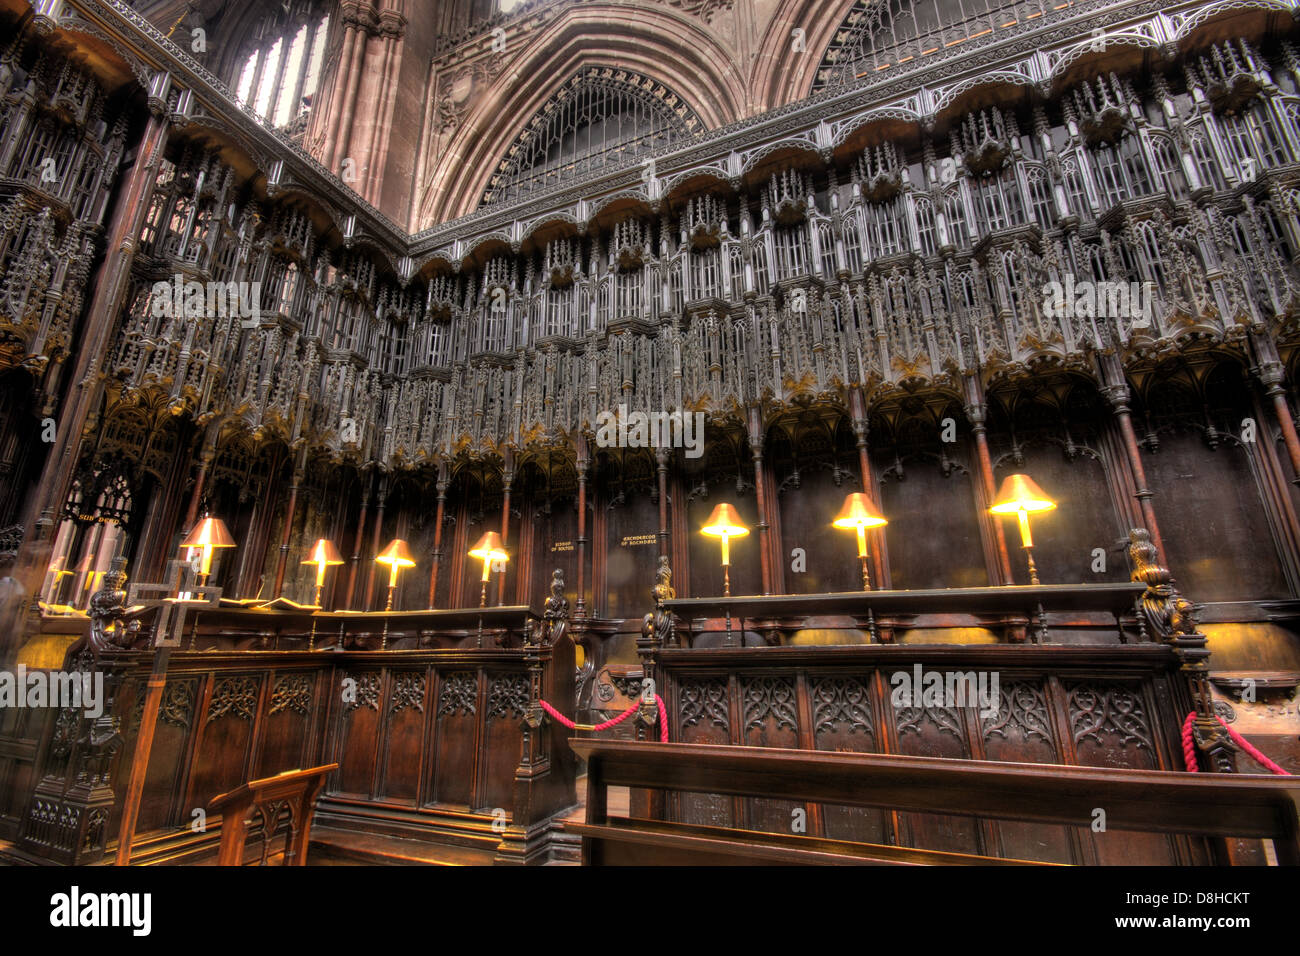 English,cathedrals,medieval,church,inside,choir,area,Collegiate,Church,of,St,Mary,Denys,and,Saint,George,city,centre,Victoria,James,Stanley,design,architecture,Perpendicular,Gothic,style,wooden,furnishings,including,the,pulpitum,stalls,Grade,I,listed,buildings,building,M31SX,M3,1SX,detail,historic,gotonysmith history,Buy Pictures of,Buy Images Of